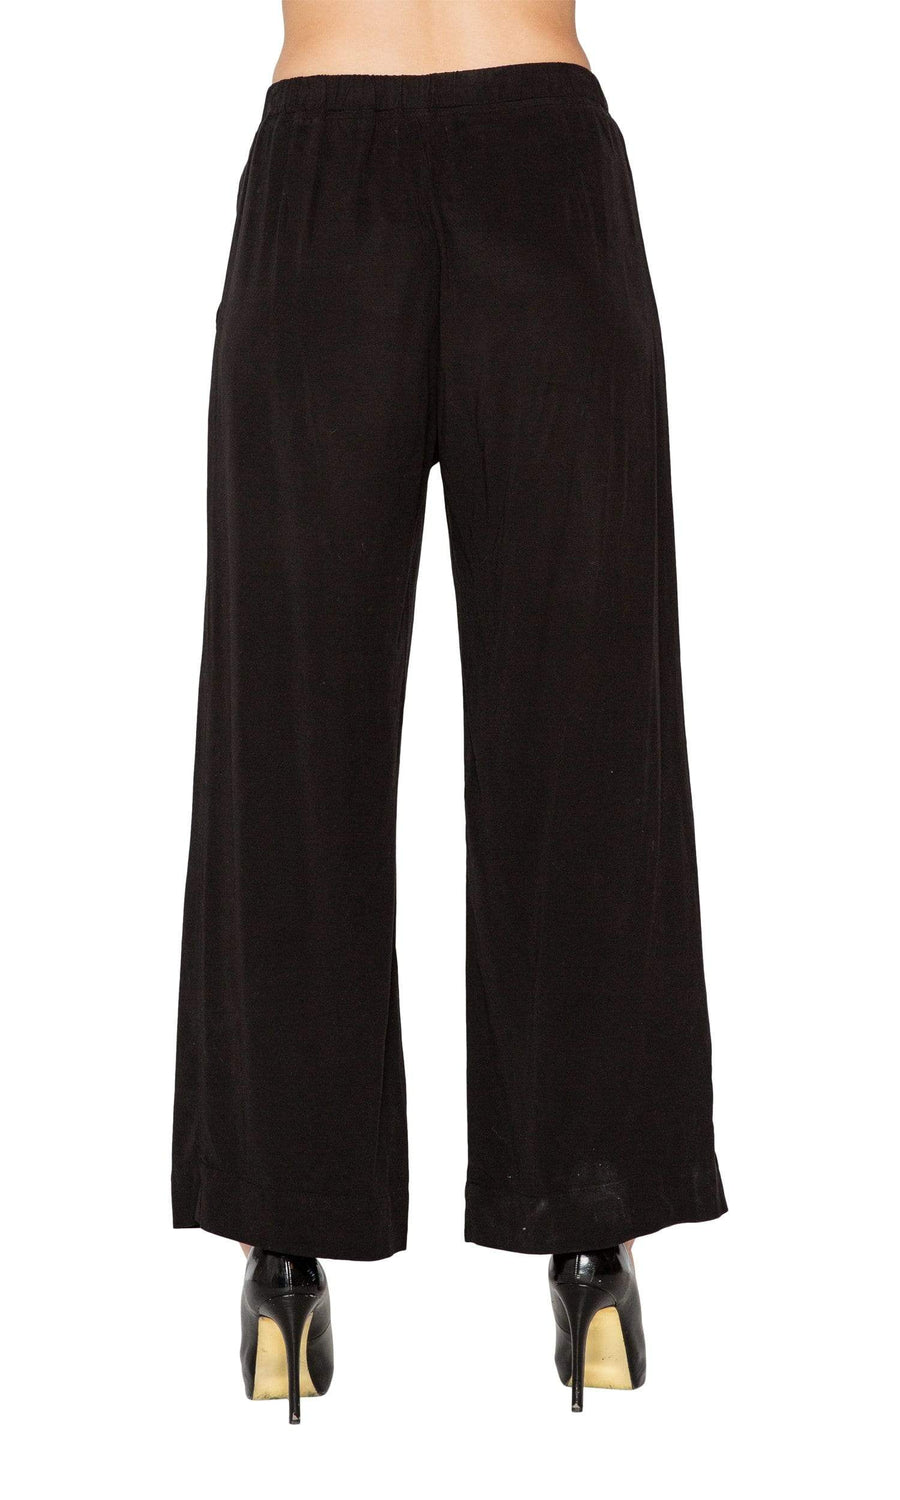 Velvet by Graham & Spencer Paris Wide Leg Pant